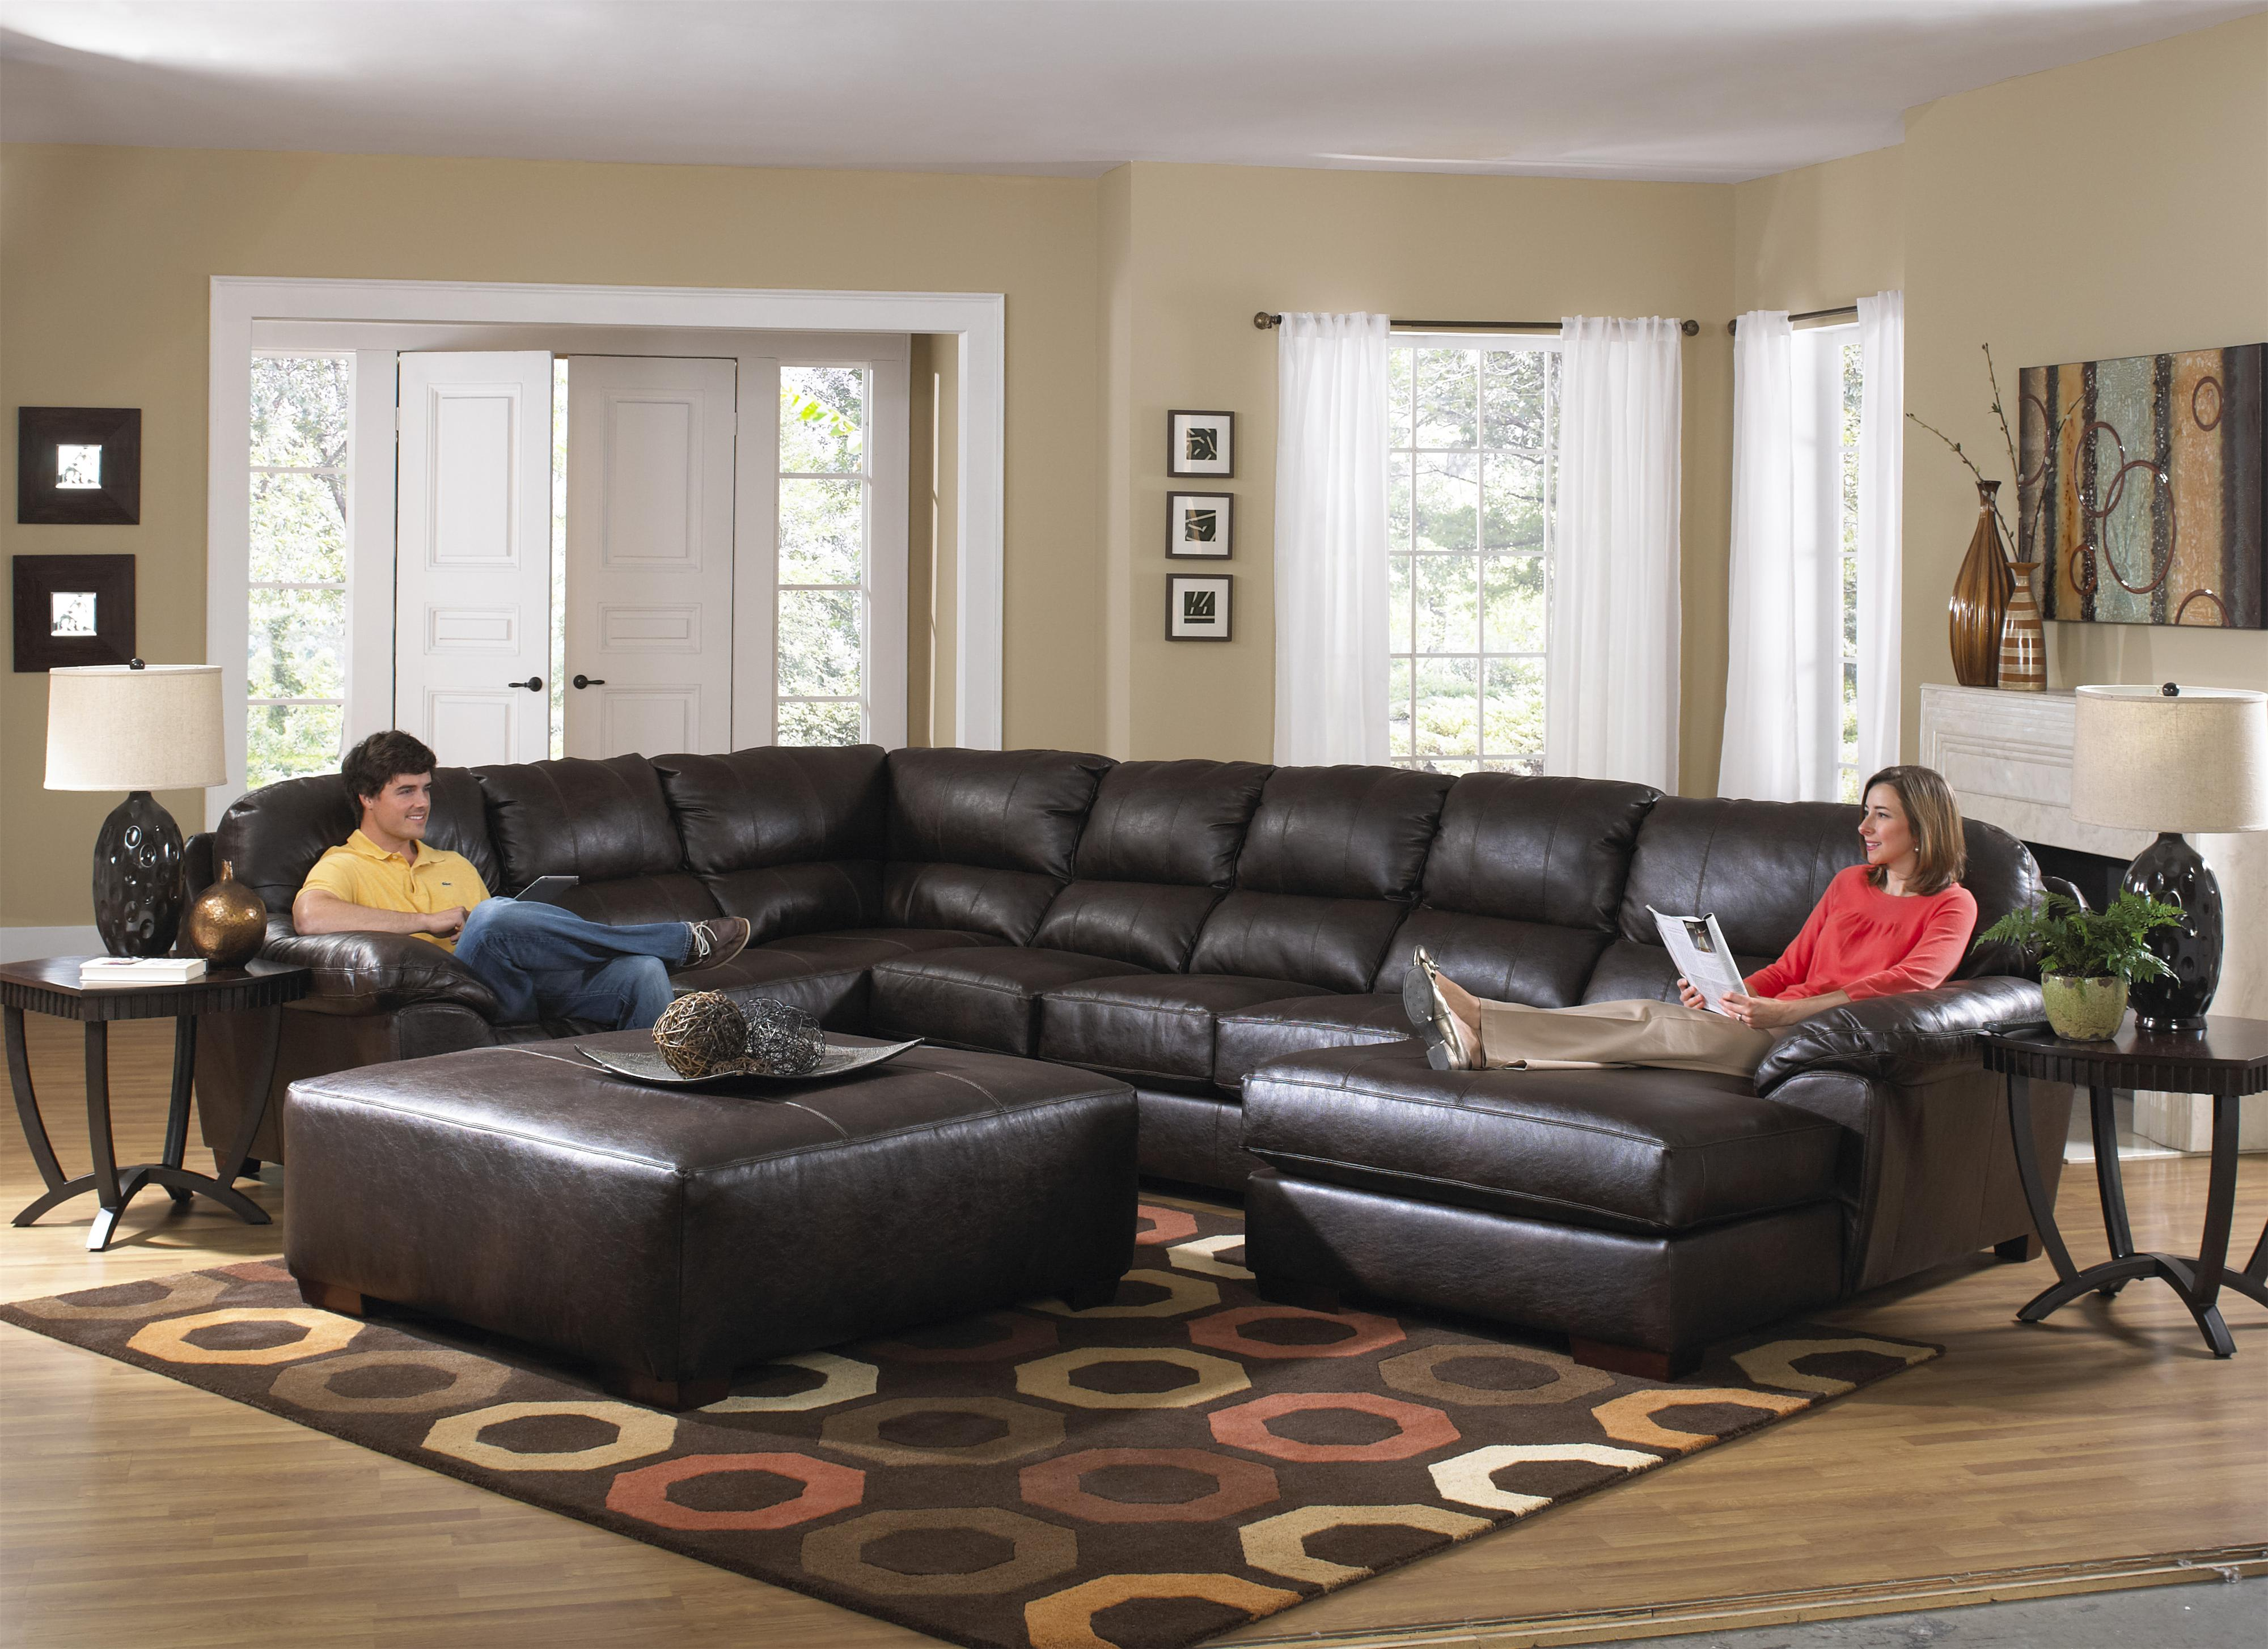 Lawson extra large seven seat sectional by jackson for Large living room furniture